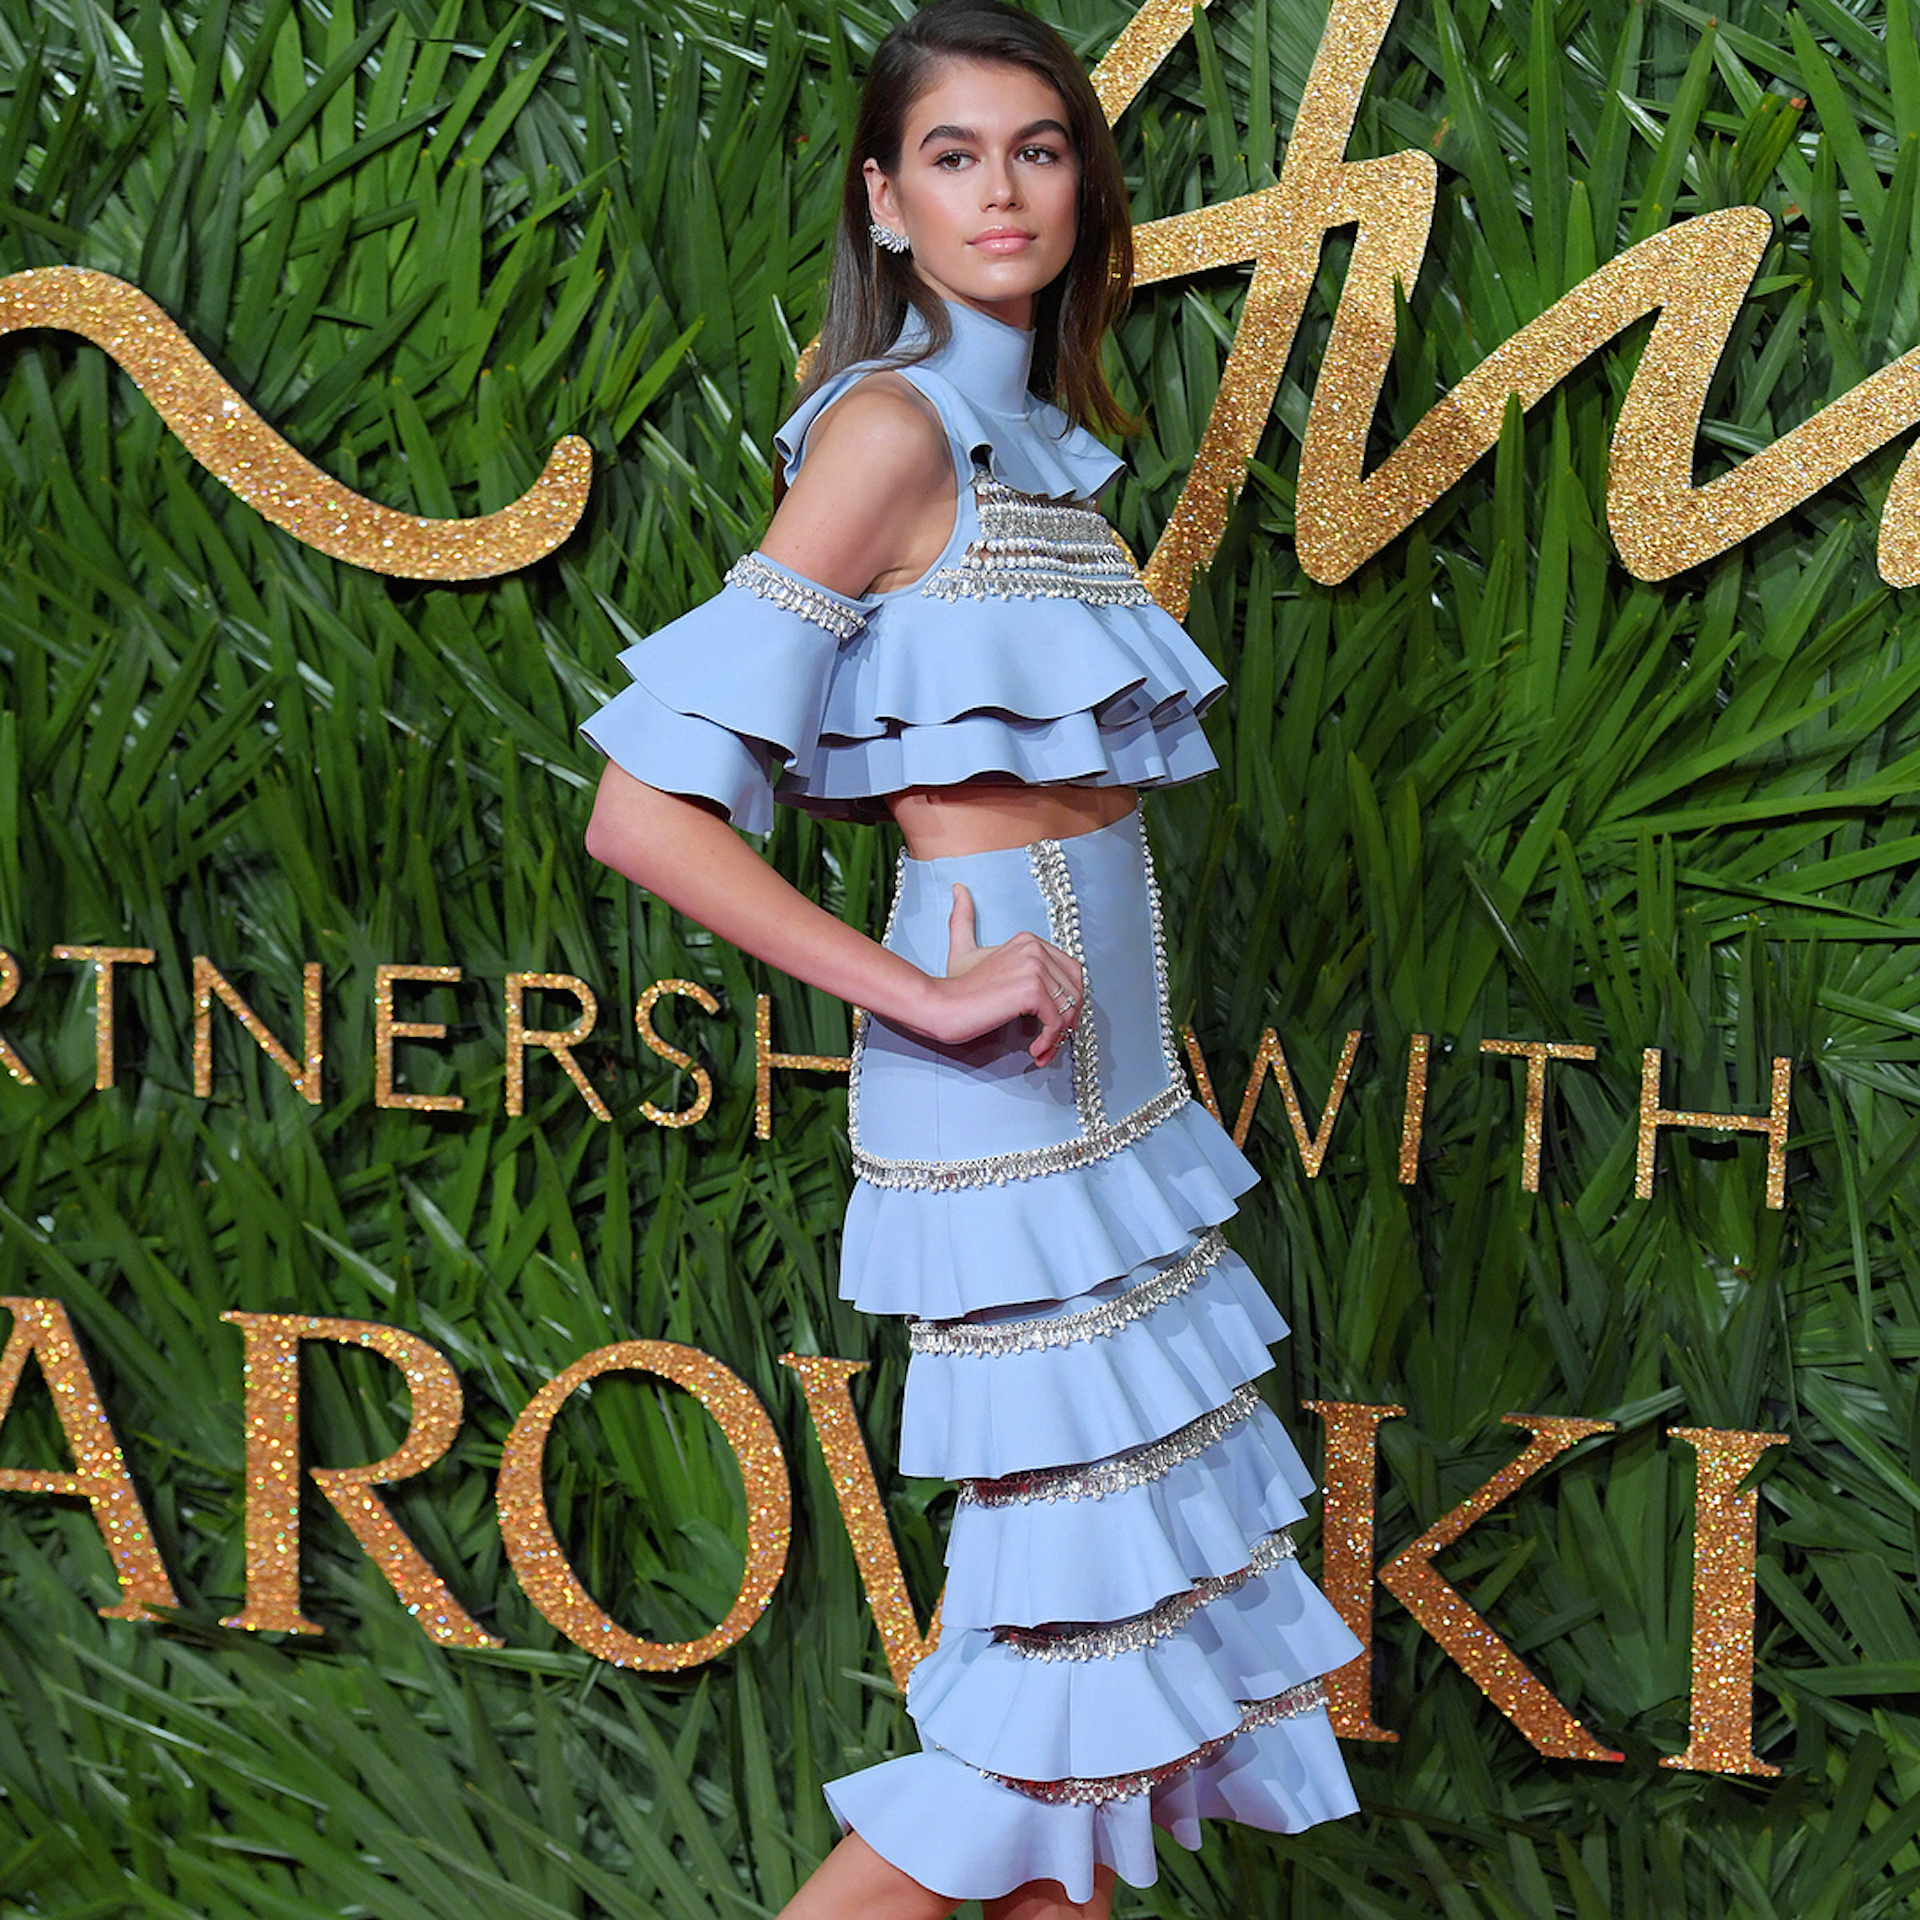 Kaia Gerber by Ralph & Russo (Foto Instagram)